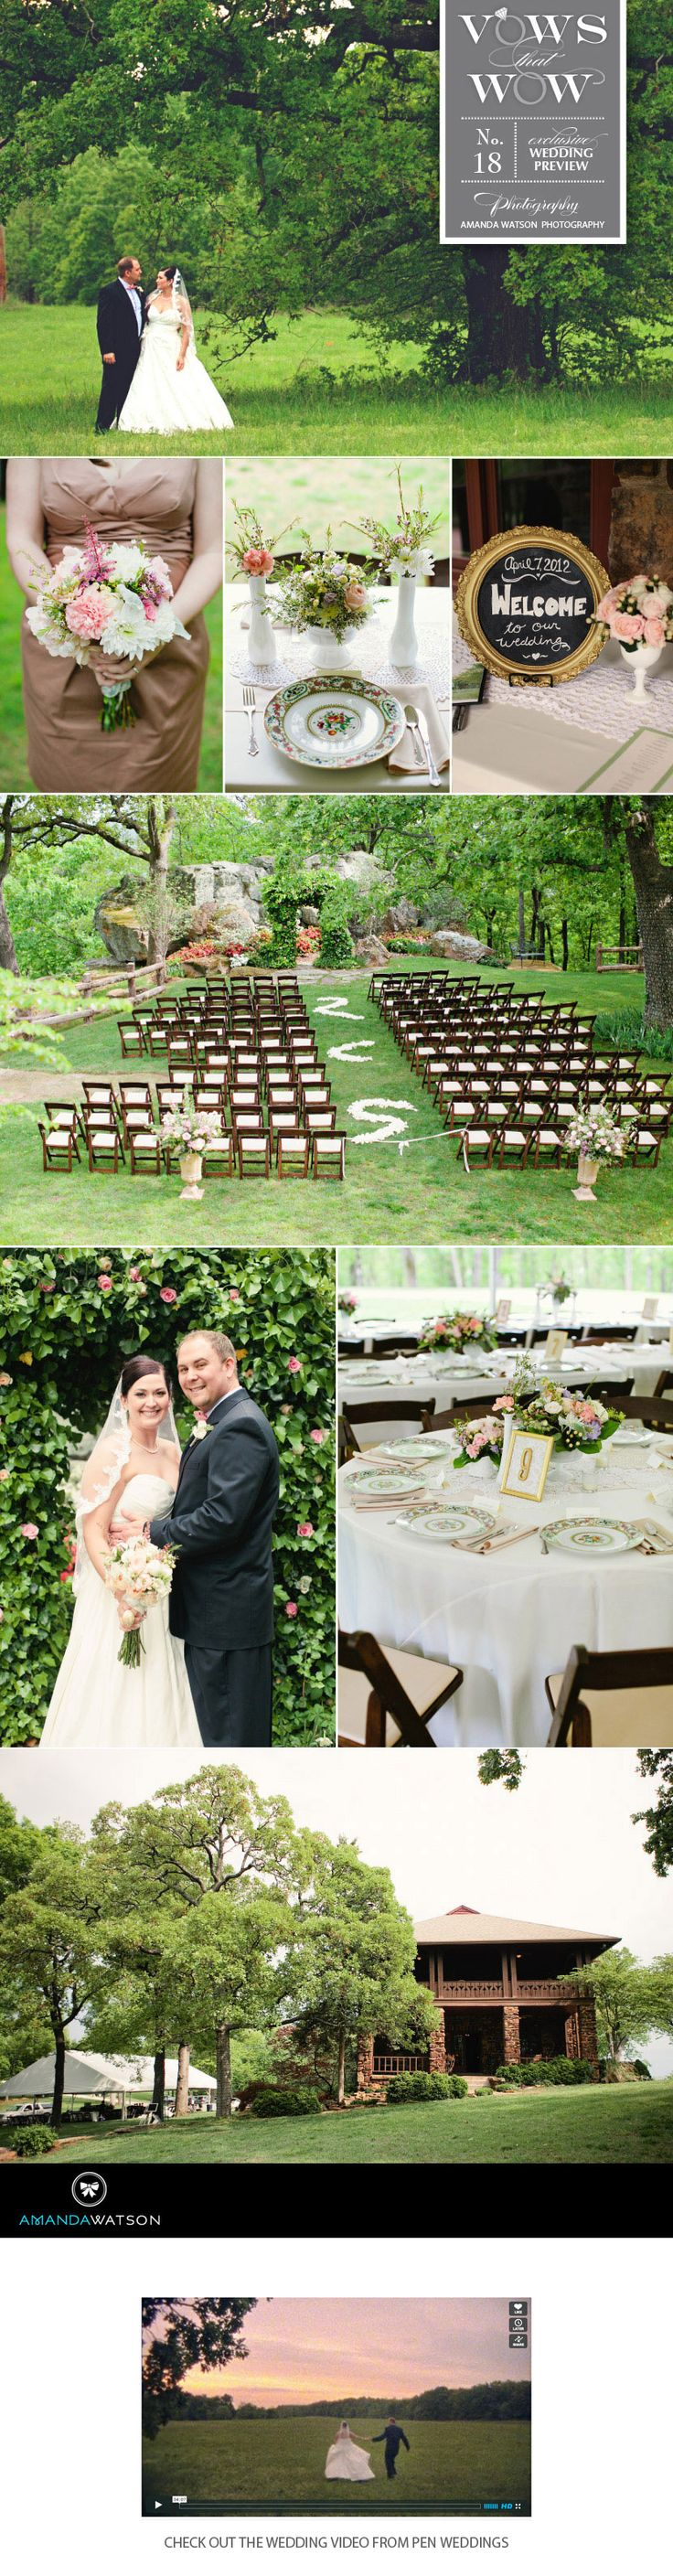 This vintage outdoor wedding captured by Amanda Watson Photography at Skelly Lodge.